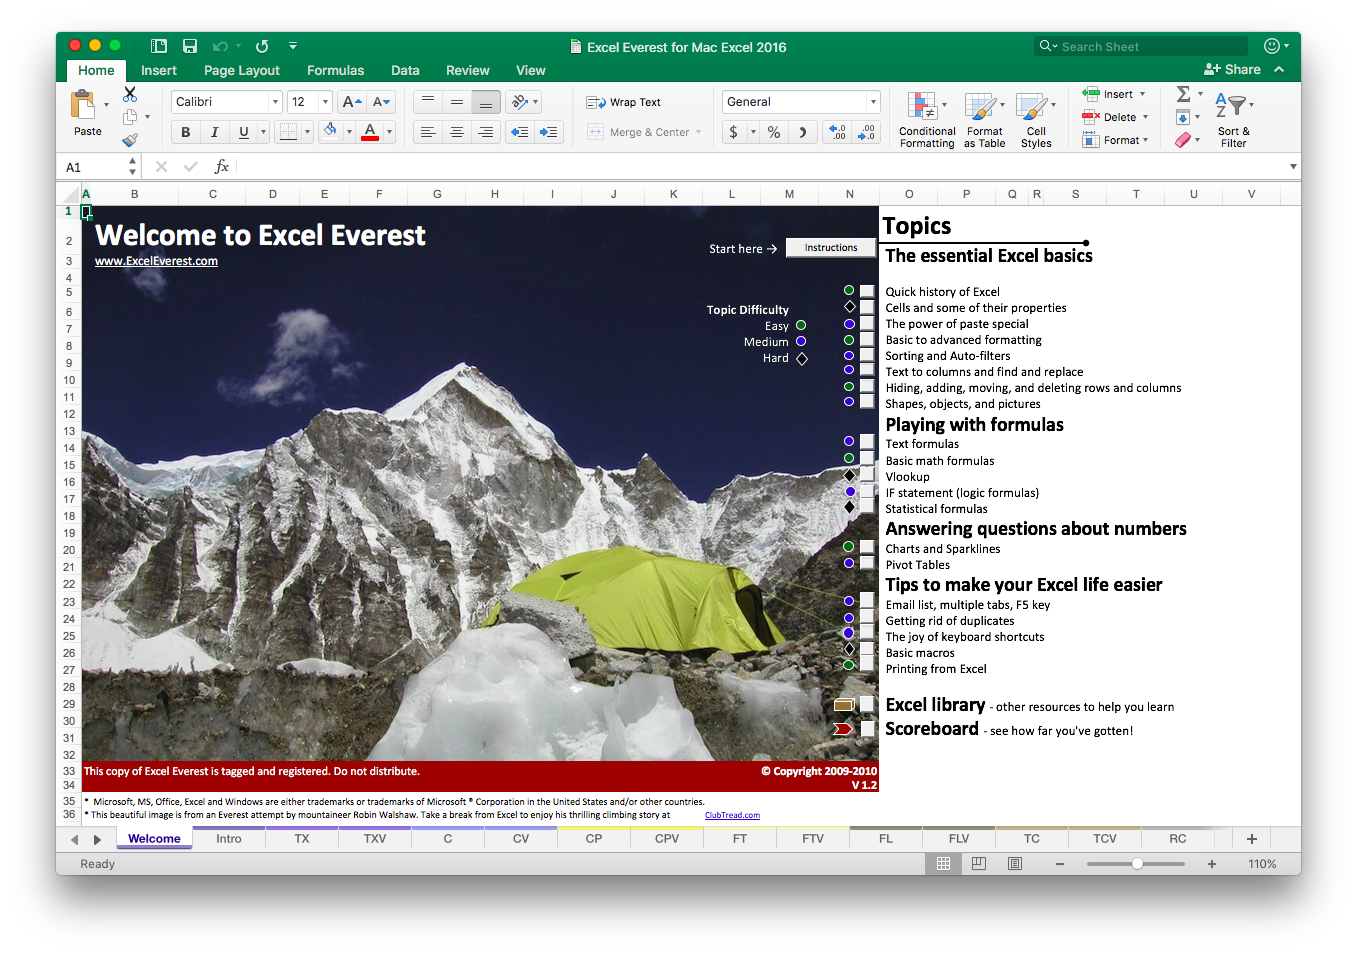 Easy-to-follow curriculum - Excel Everest has 41 key business topics and over 150 interactive exercises. All are organized logically and simply in the order you should learn them.